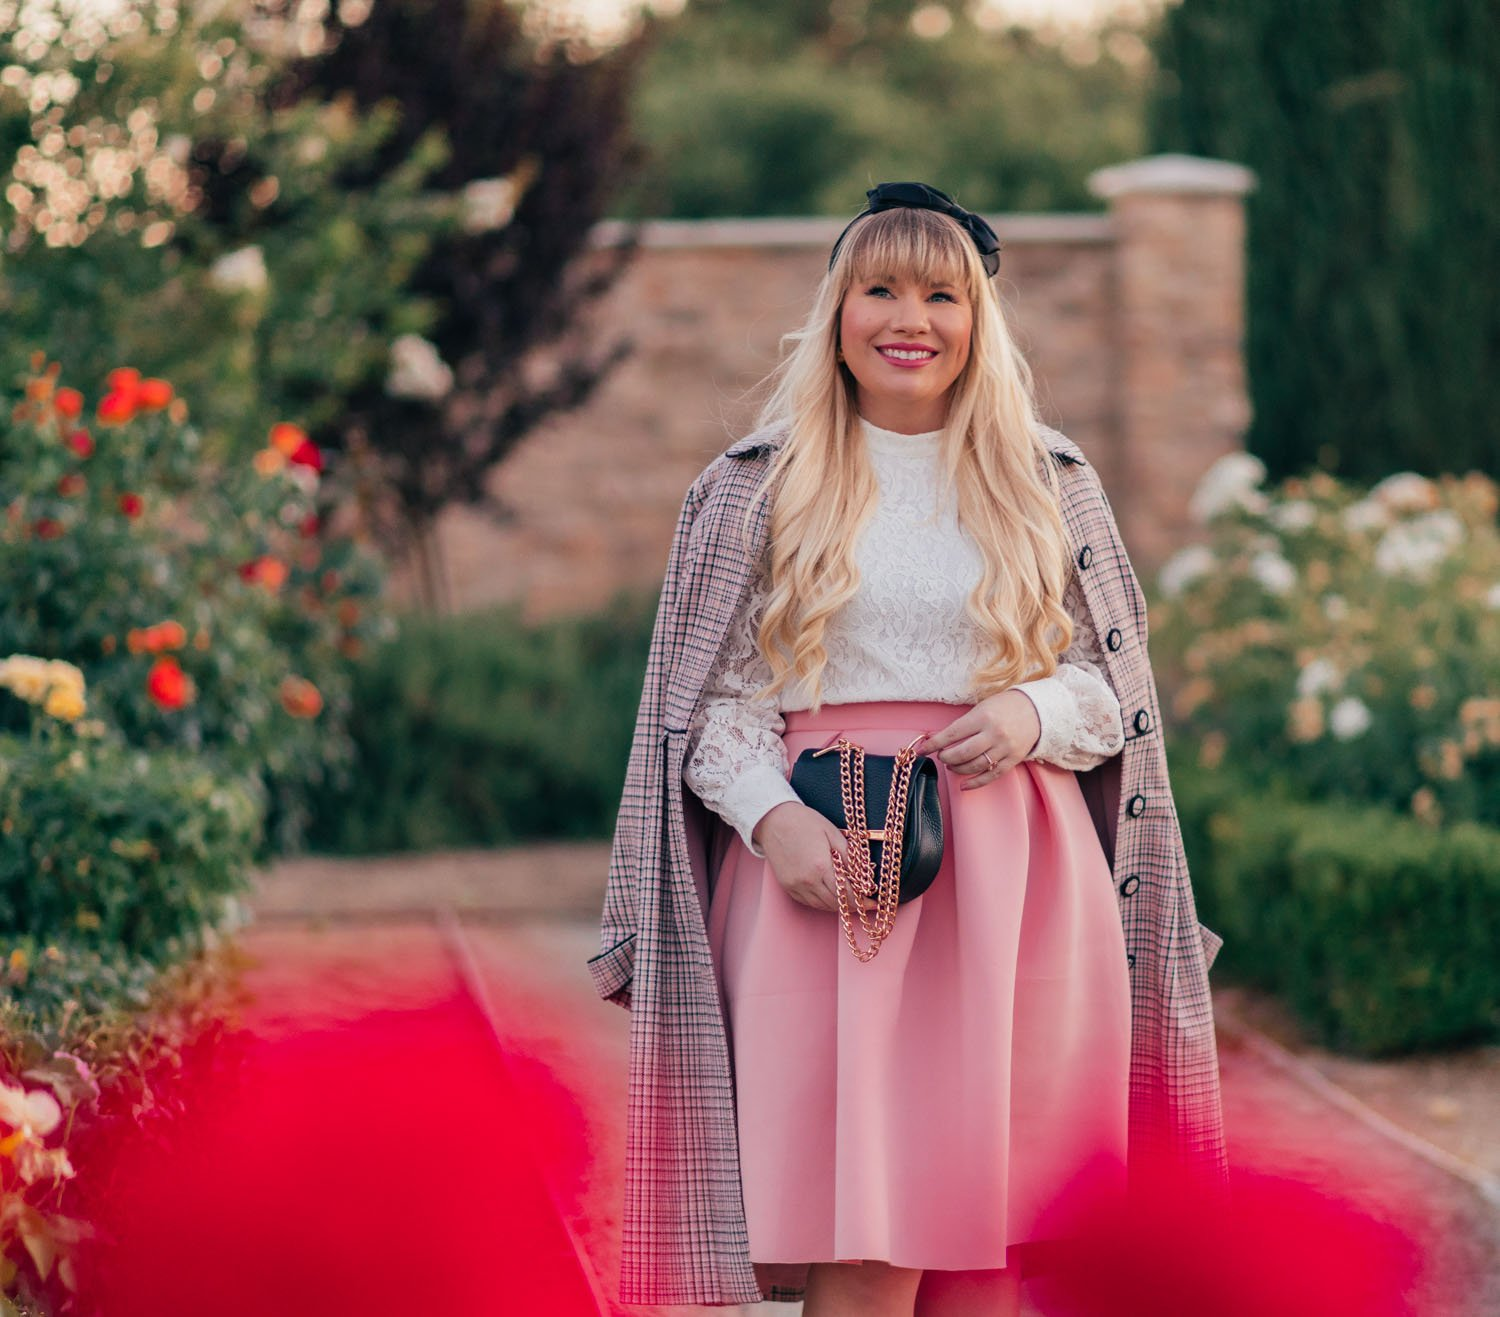 Fashion Blogger Elizabeth Hugen of Lizzie in Lace styles a white lace top with a pink skirt and a plaid pink coat for gossip girl inspired style